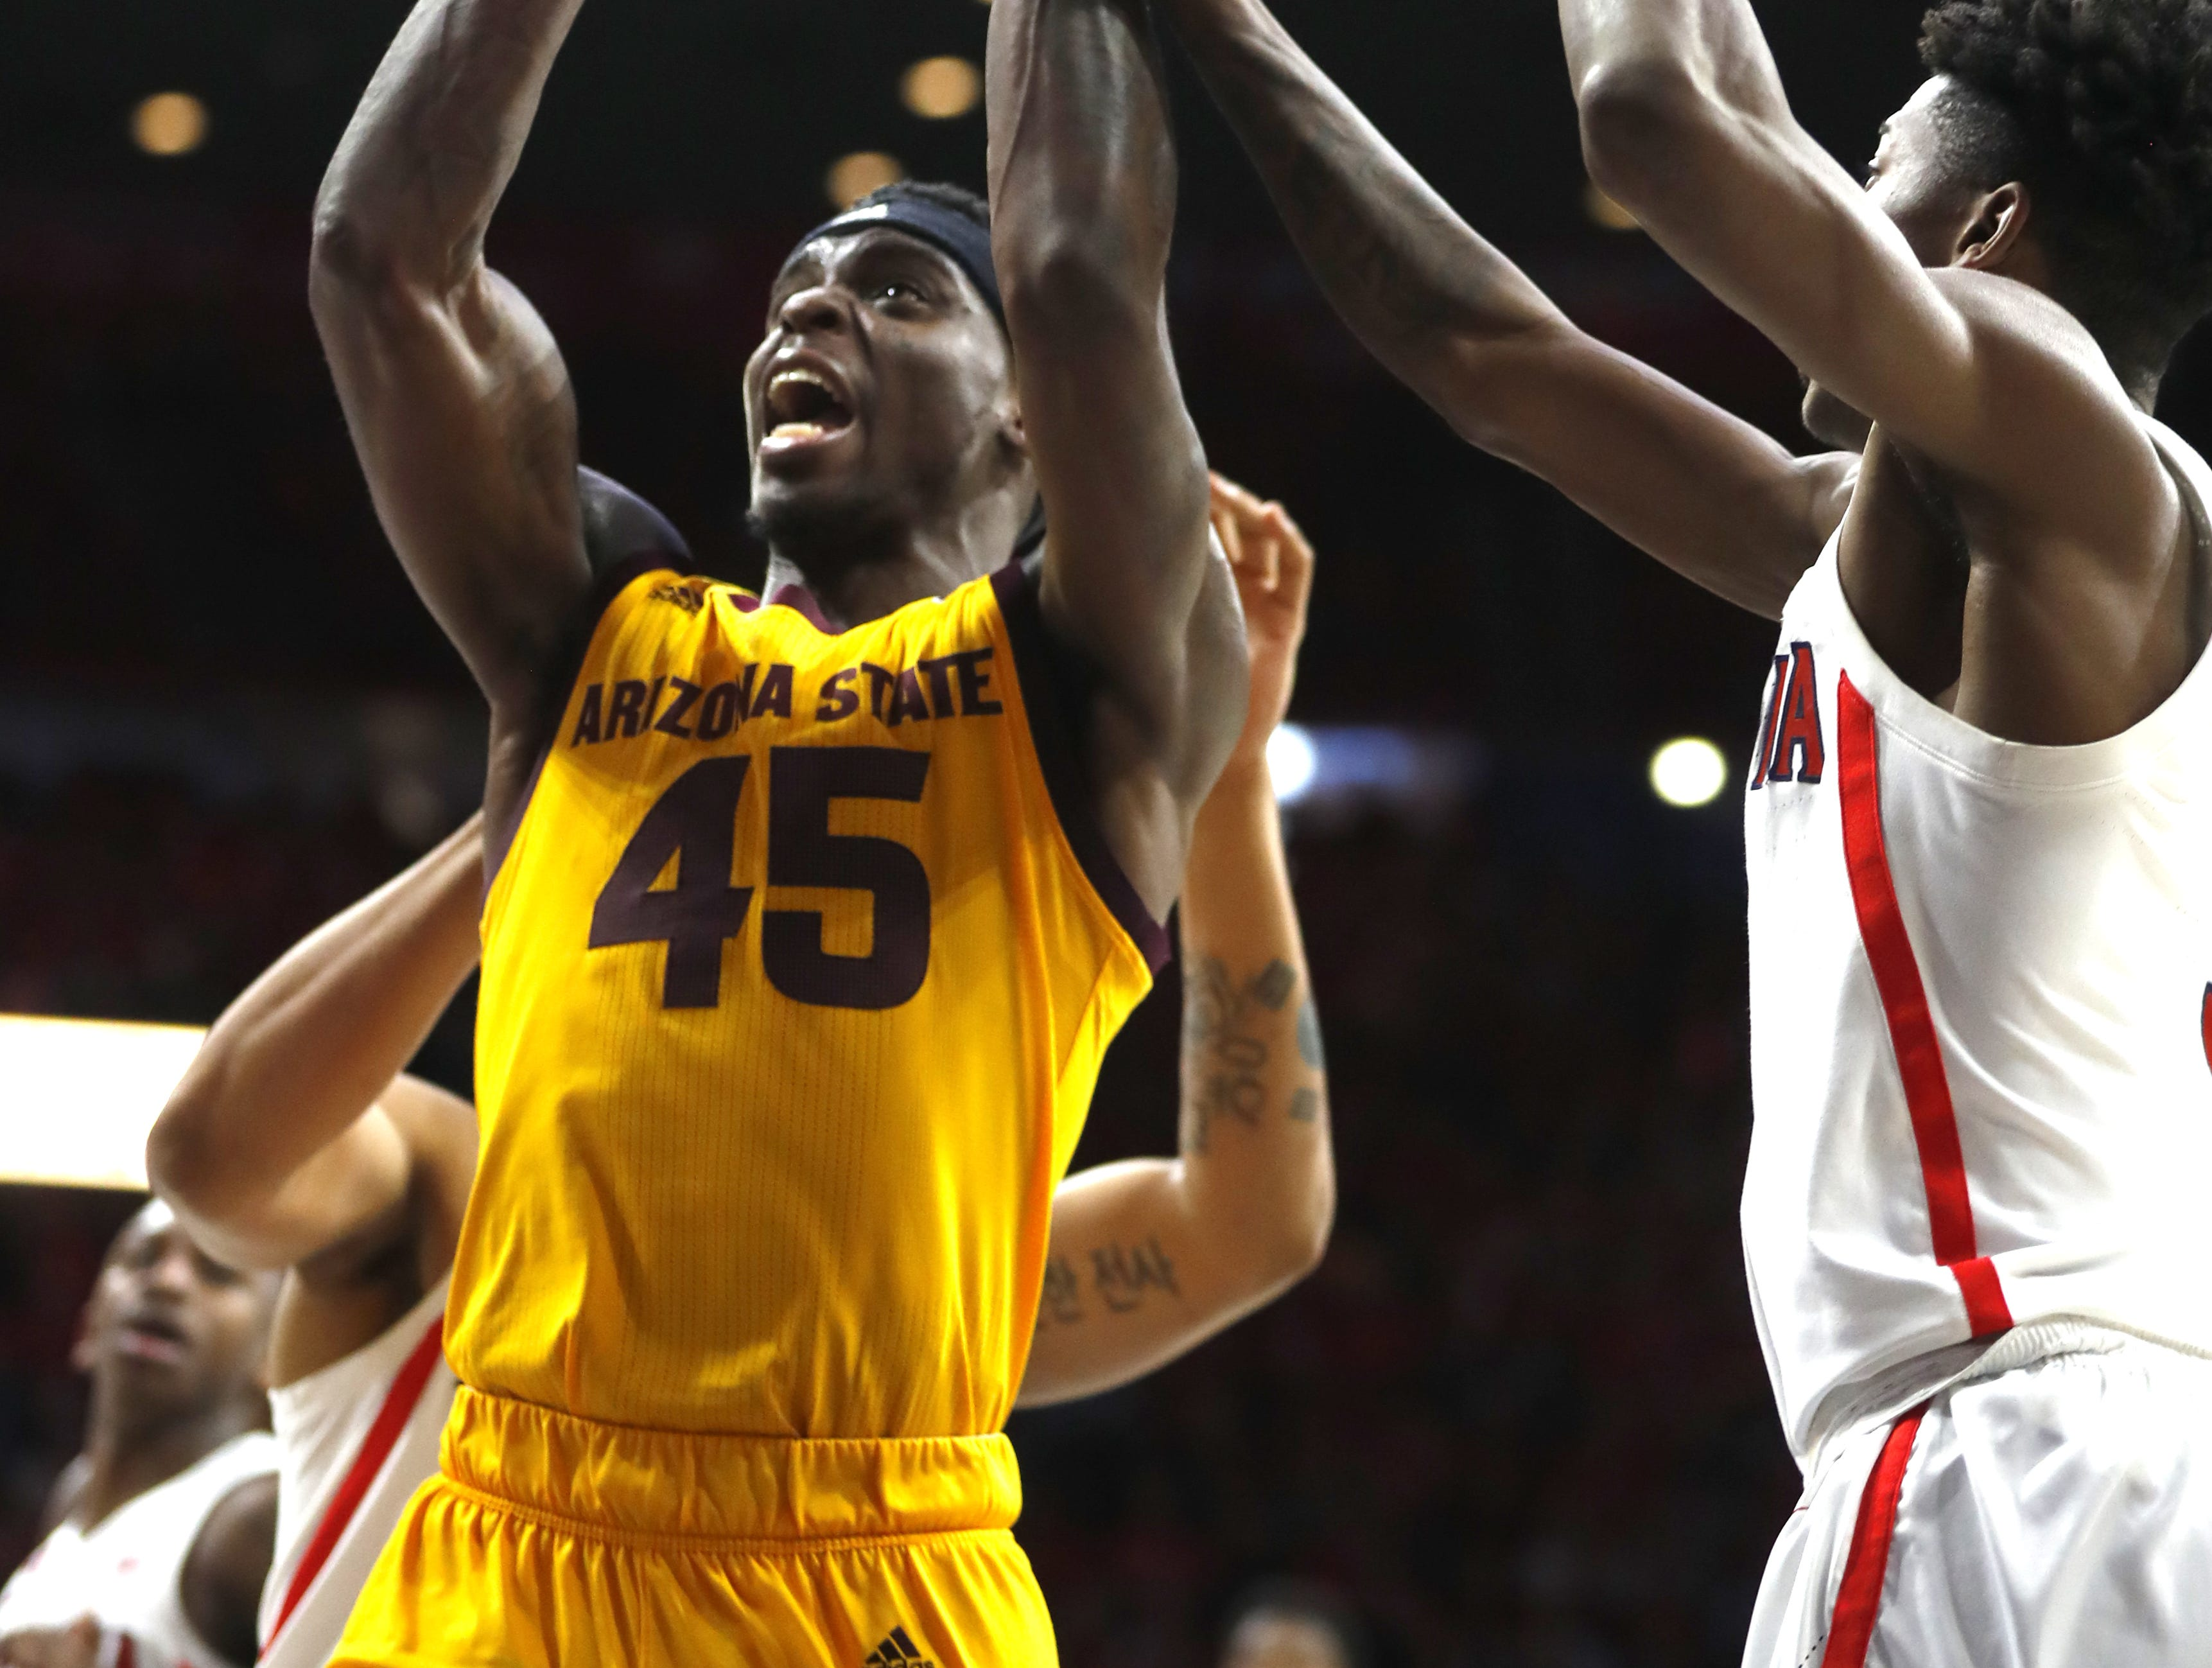 ASU's Zylan Cheatham (45) drives to the basket against Arizona during the second half at the McKale Memorial Center in Tucson, Ariz. on March 9, 2019.